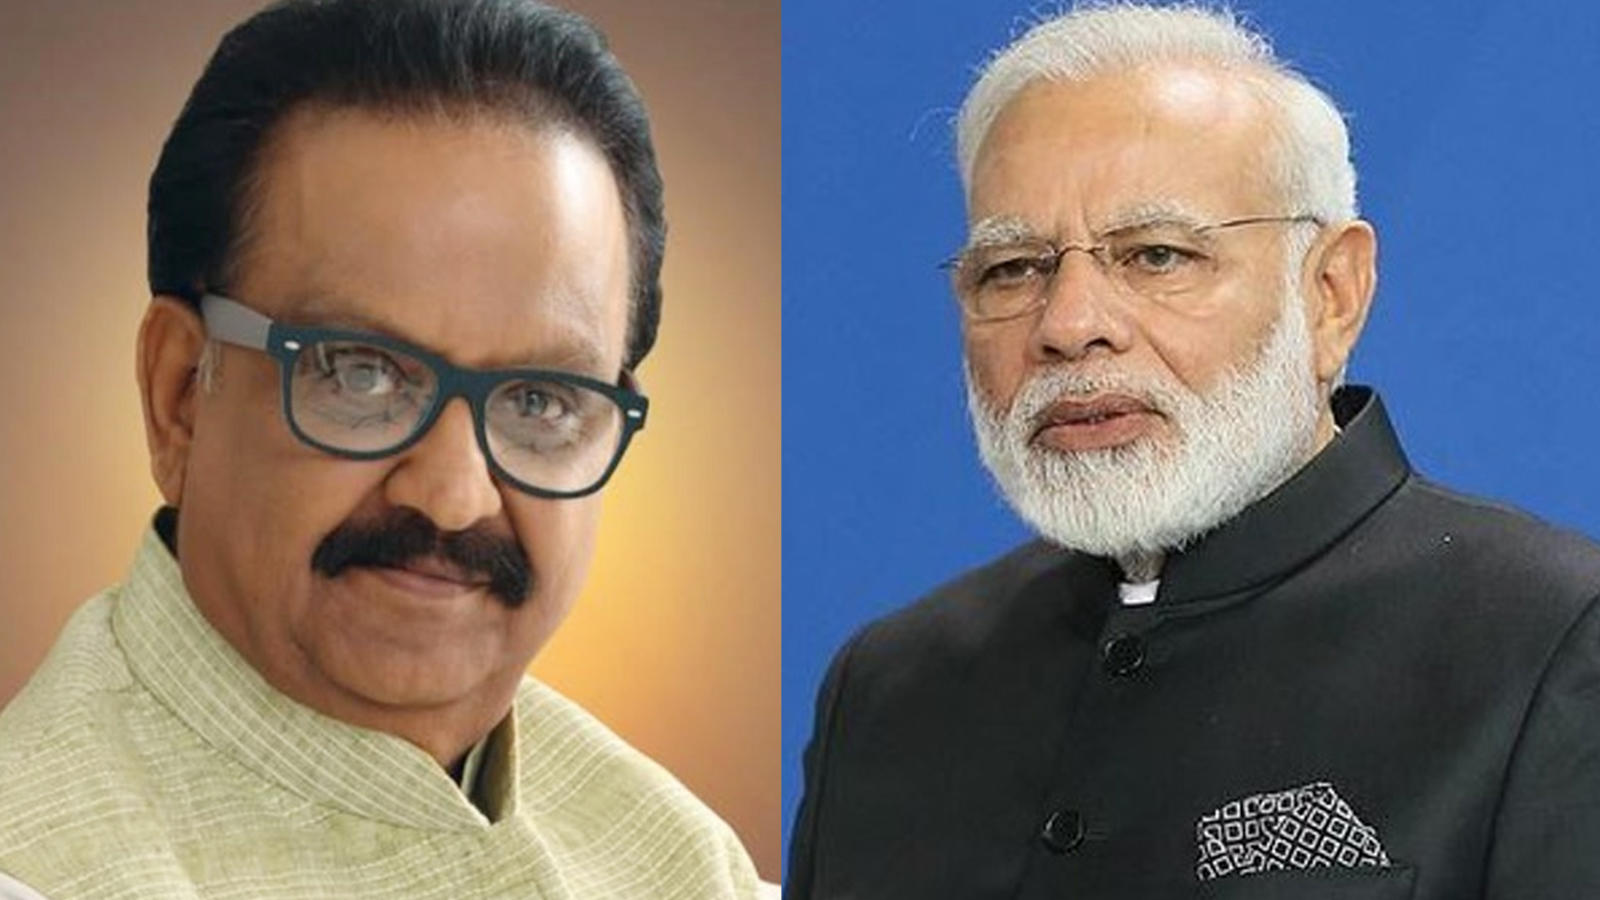 prime-minister-narendra-modi-and-bollywood-celebs-mourn-the-loss-of-legendary-singer-sp-balasubrahmanyam